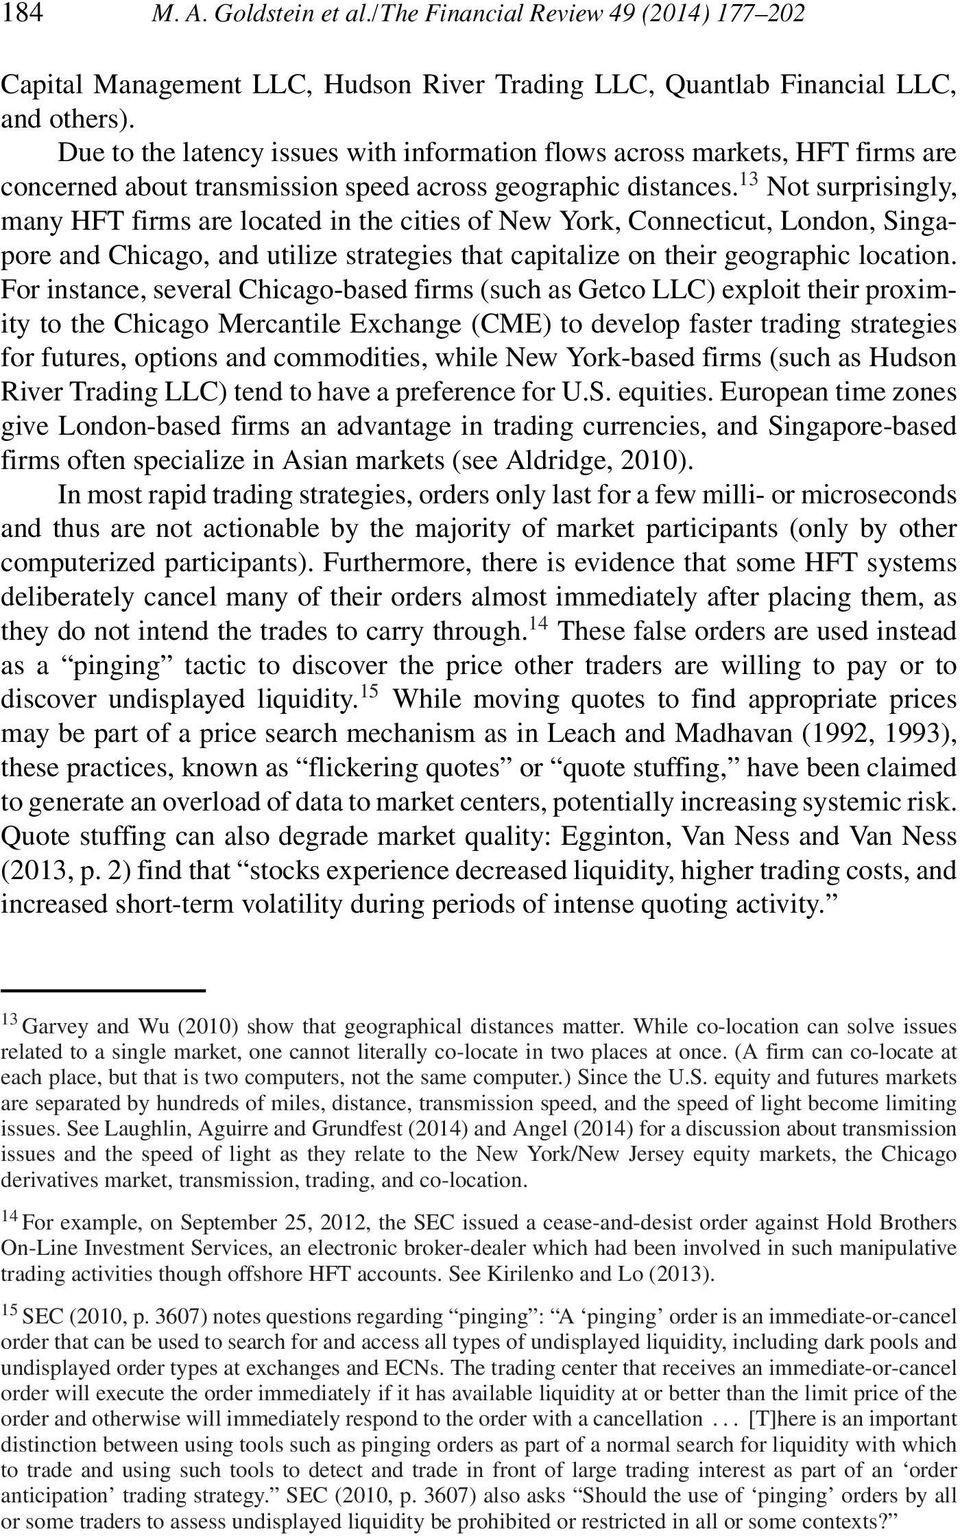 Adaptive_strategies_for high frequency trading.pdf